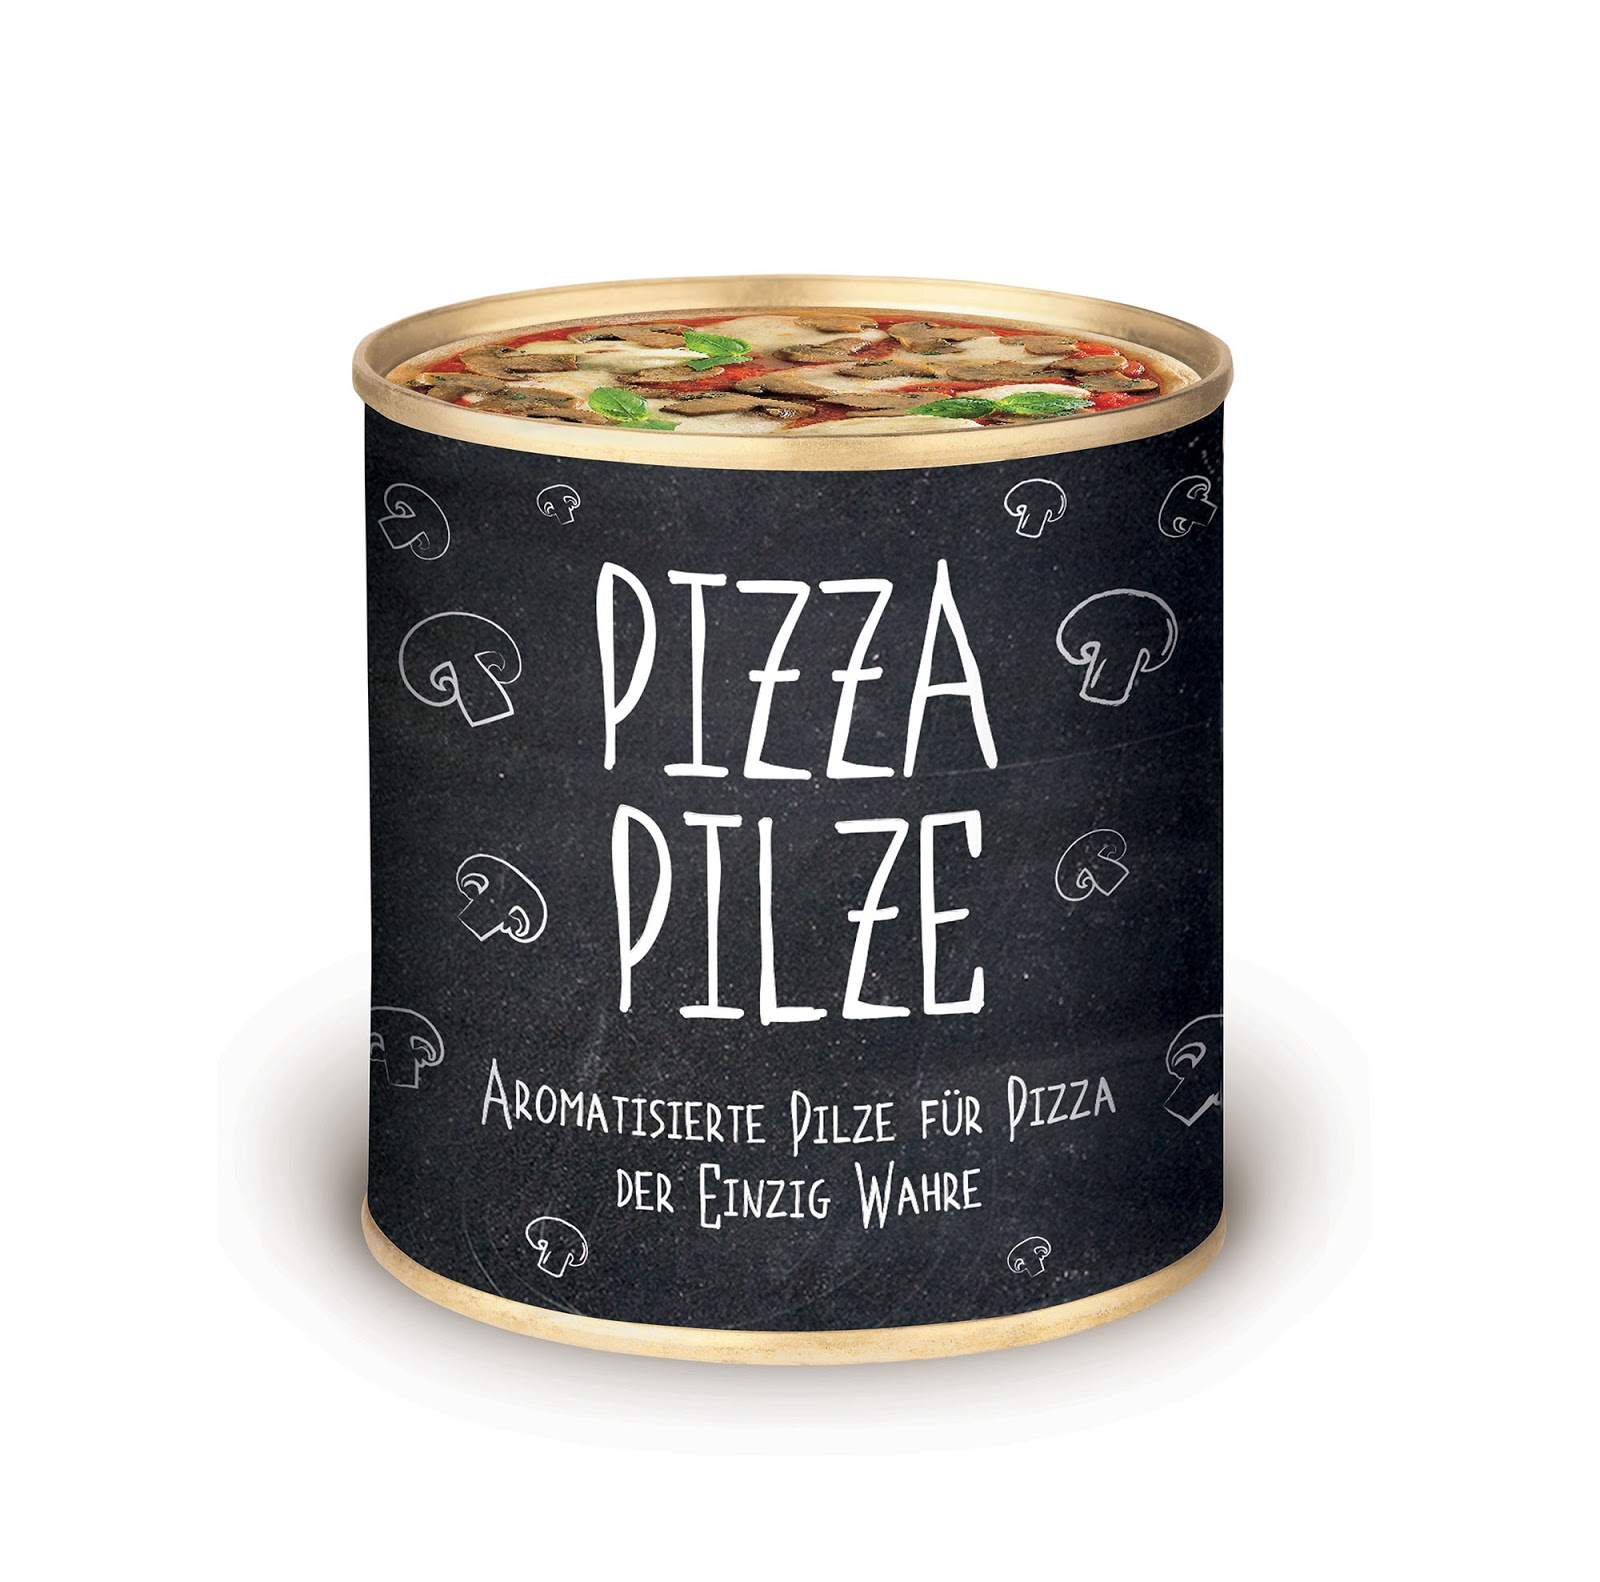 Its Uniqueness Is To Print A Image Of Pizza With Mushrooms On The Tin Can  Closing. This Indicate The Purpose Of The Main Use Of The Product Inside.